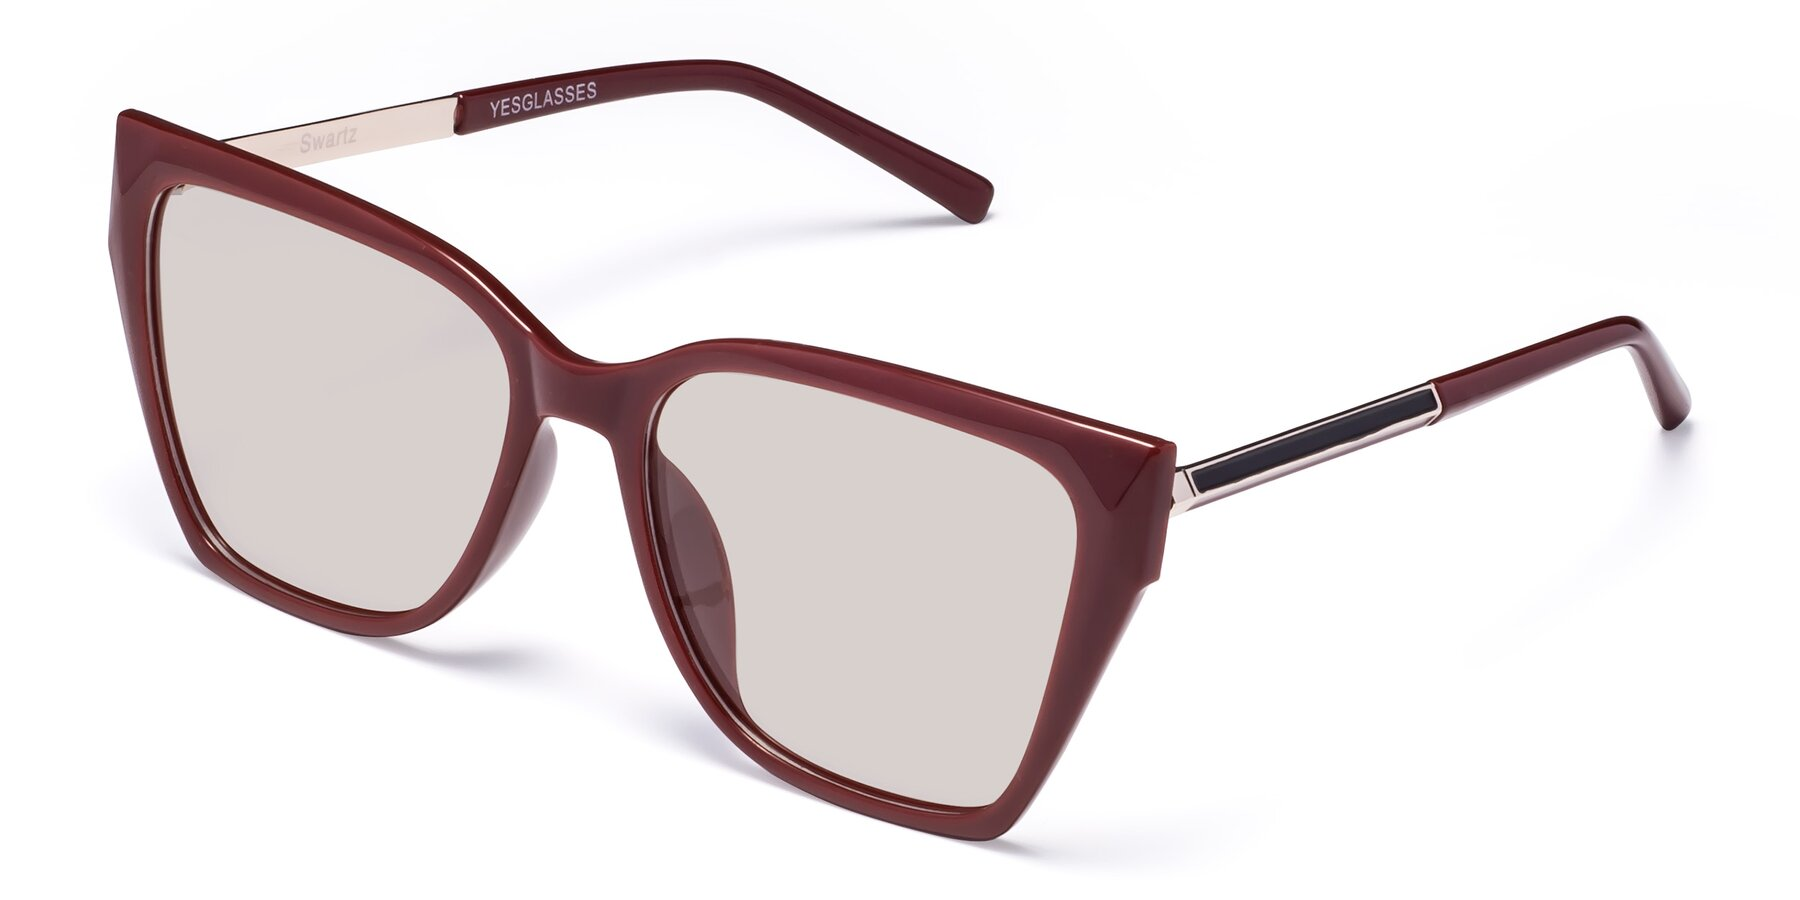 Angle of Swartz in Wine with Light Brown Tinted Lenses